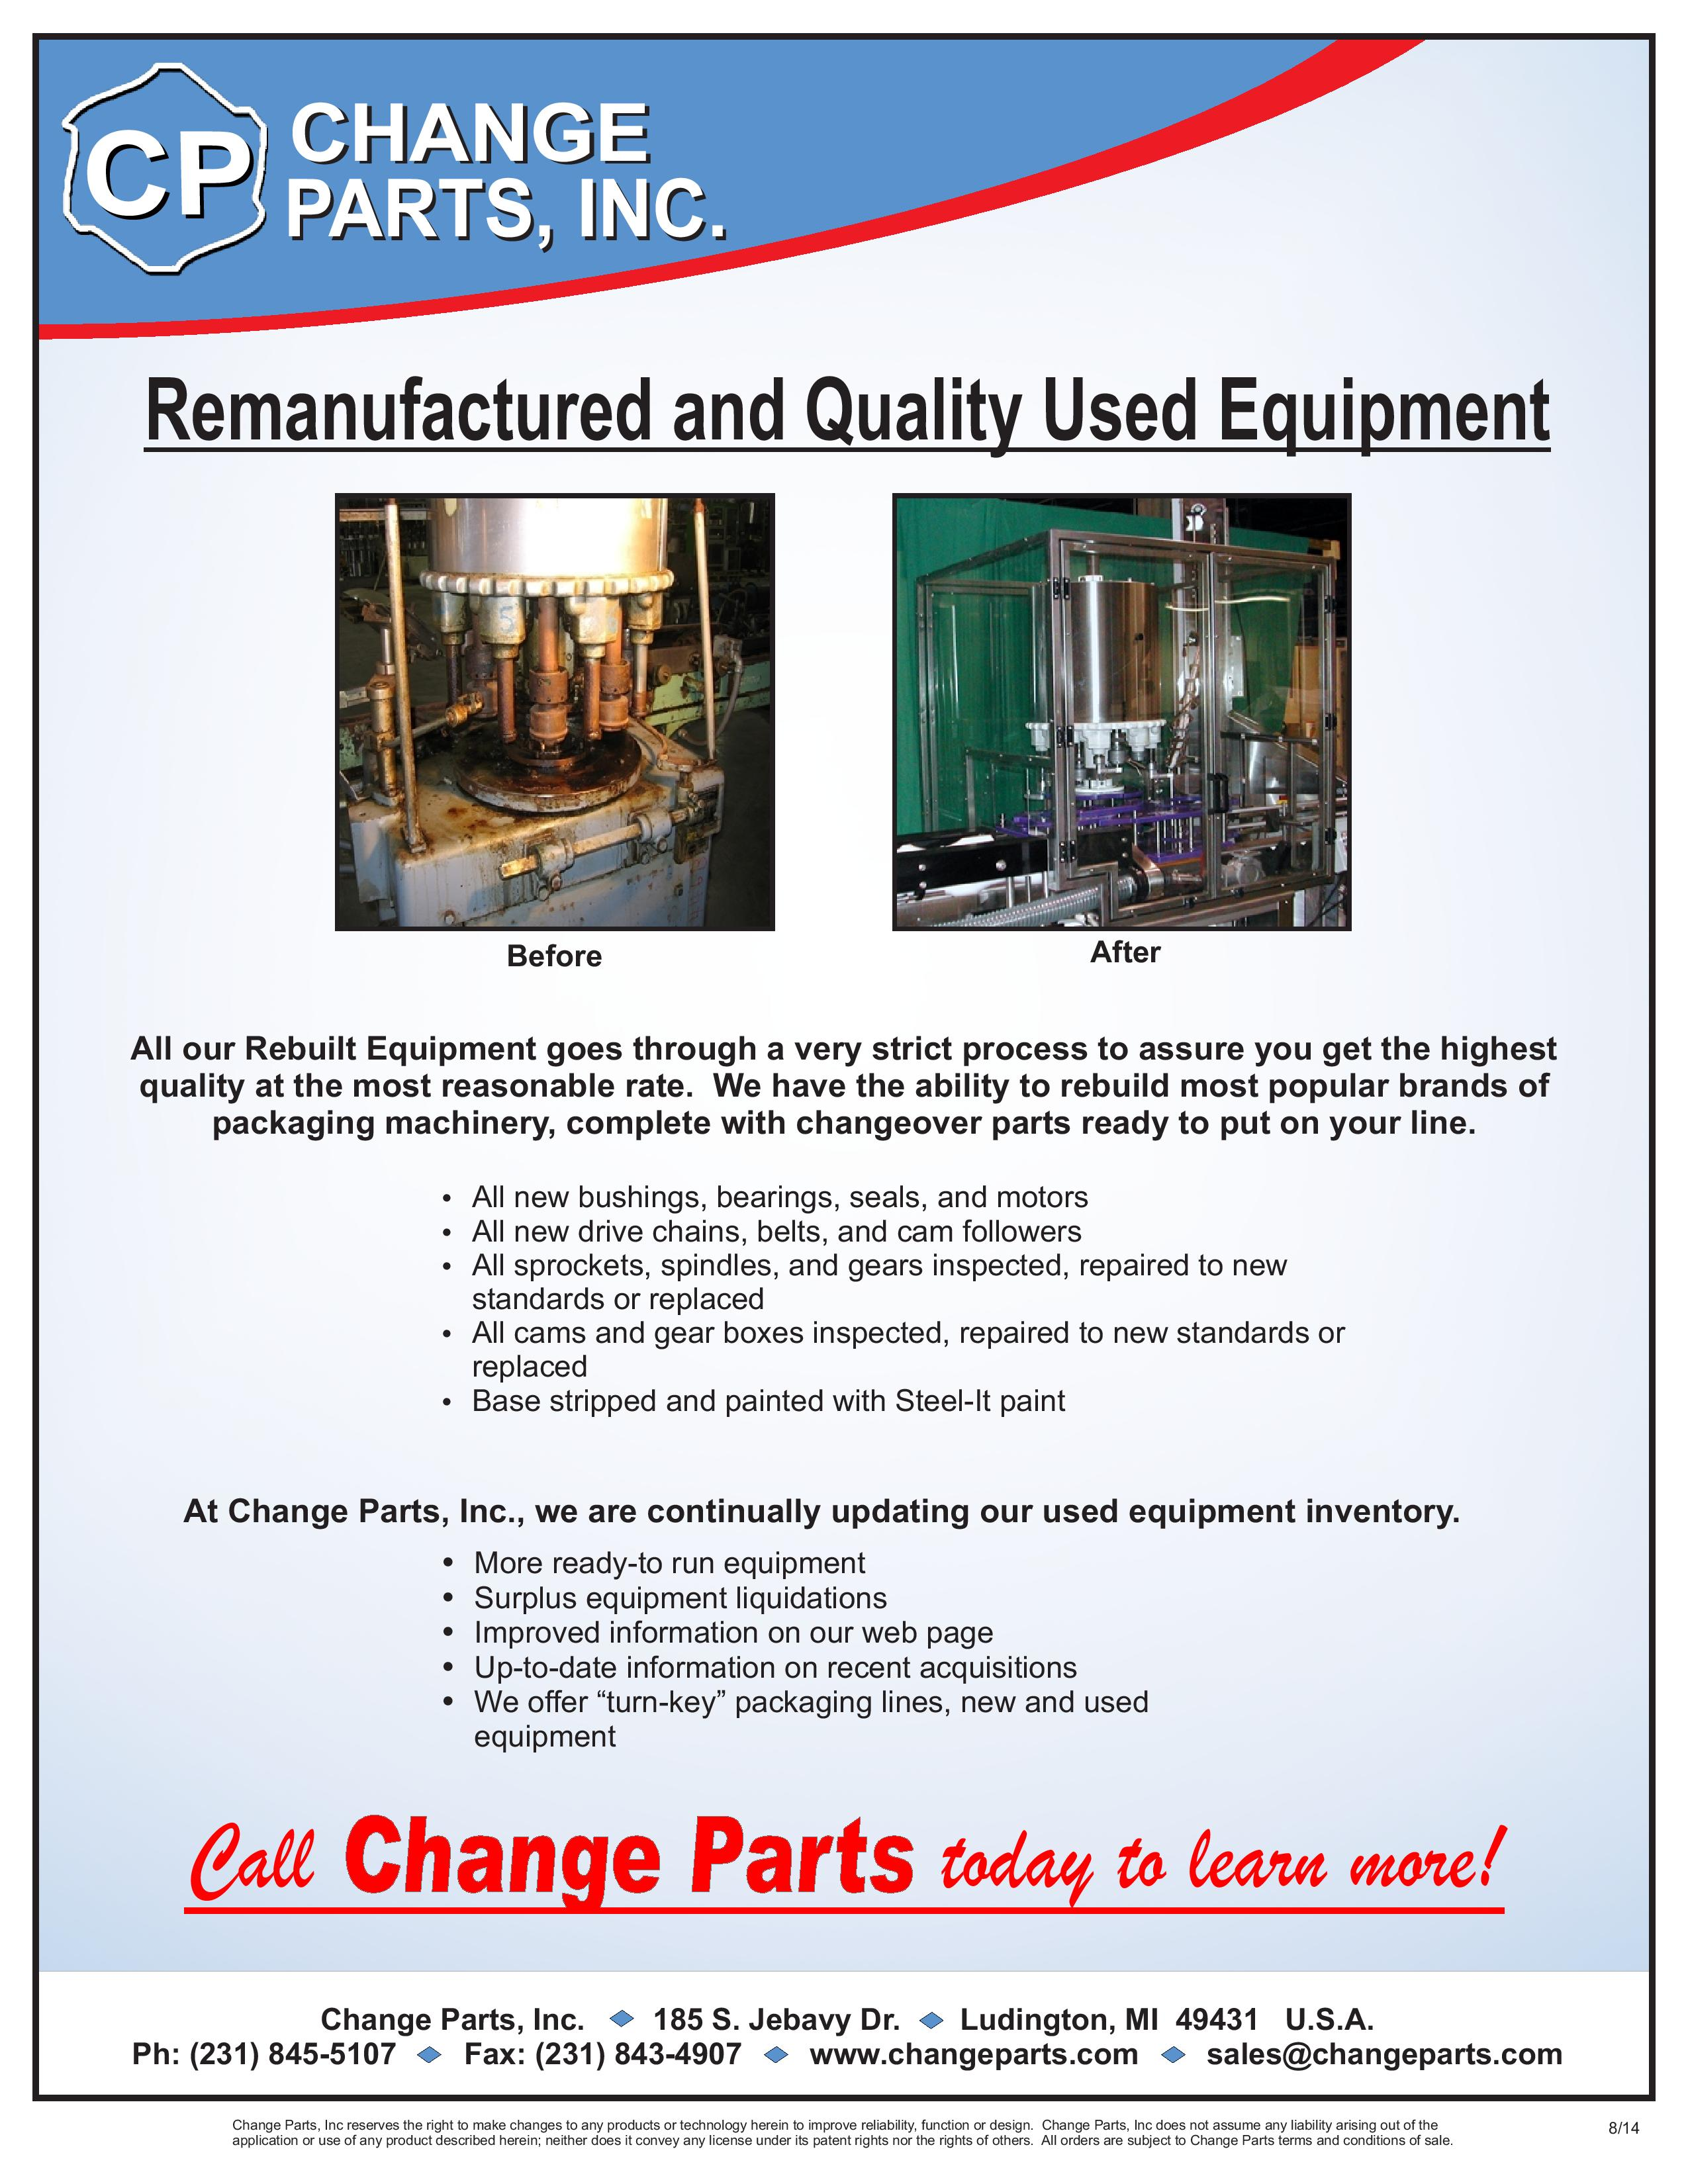 cpi-remanufactured-and-quality-used-equipment-page-001.jpg